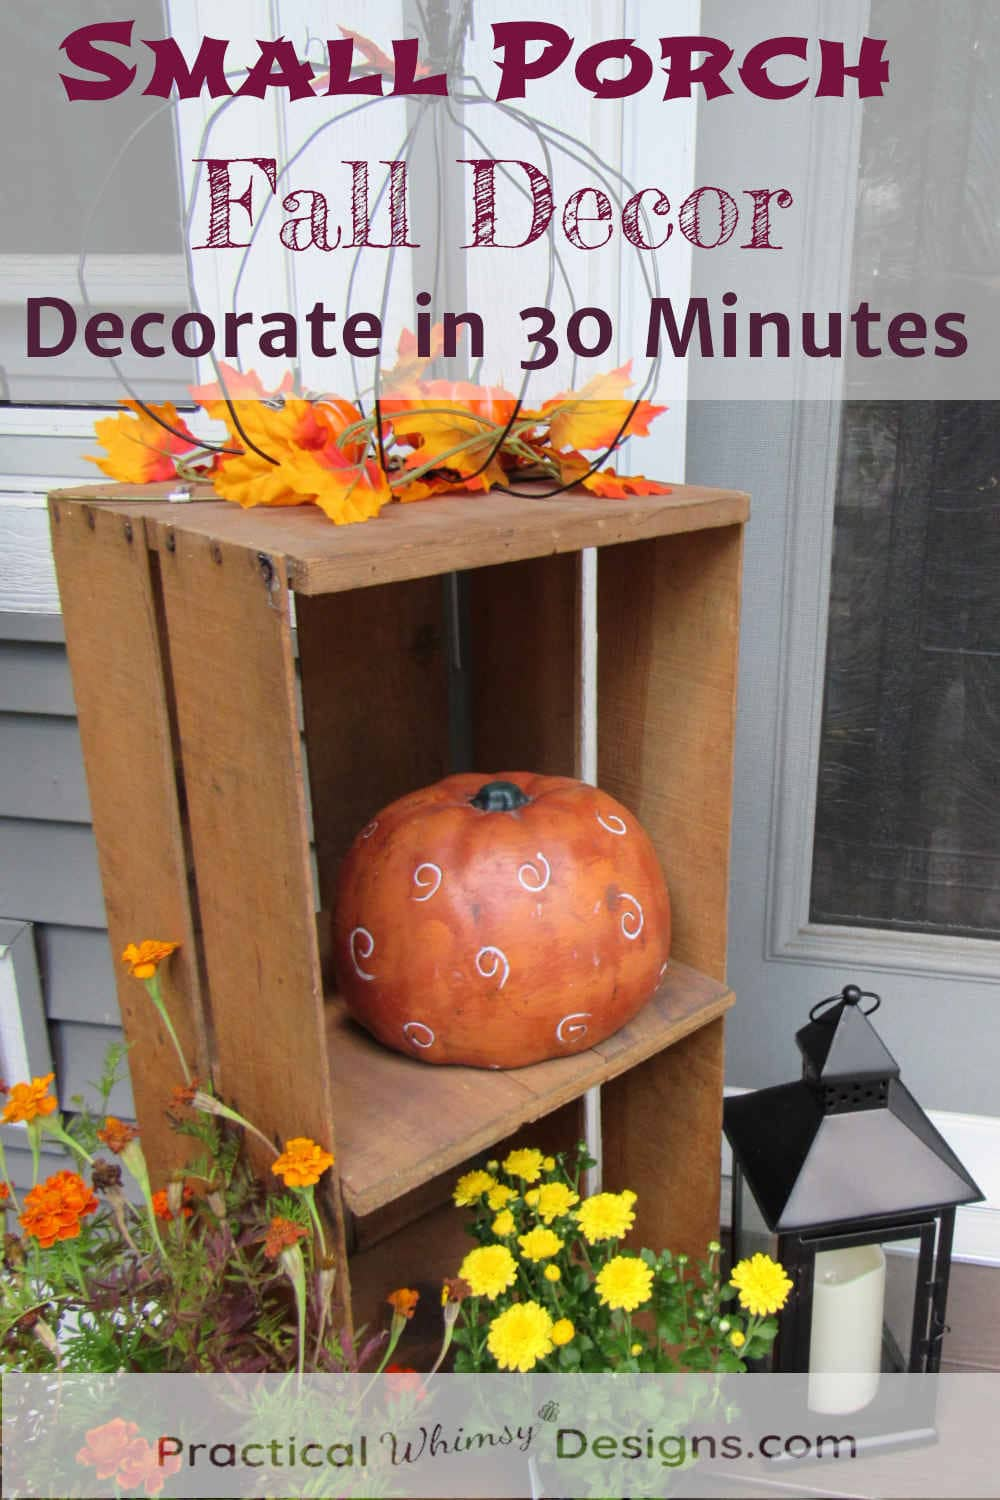 Small porch fall decor pumpkins, crate, lamp and flowers